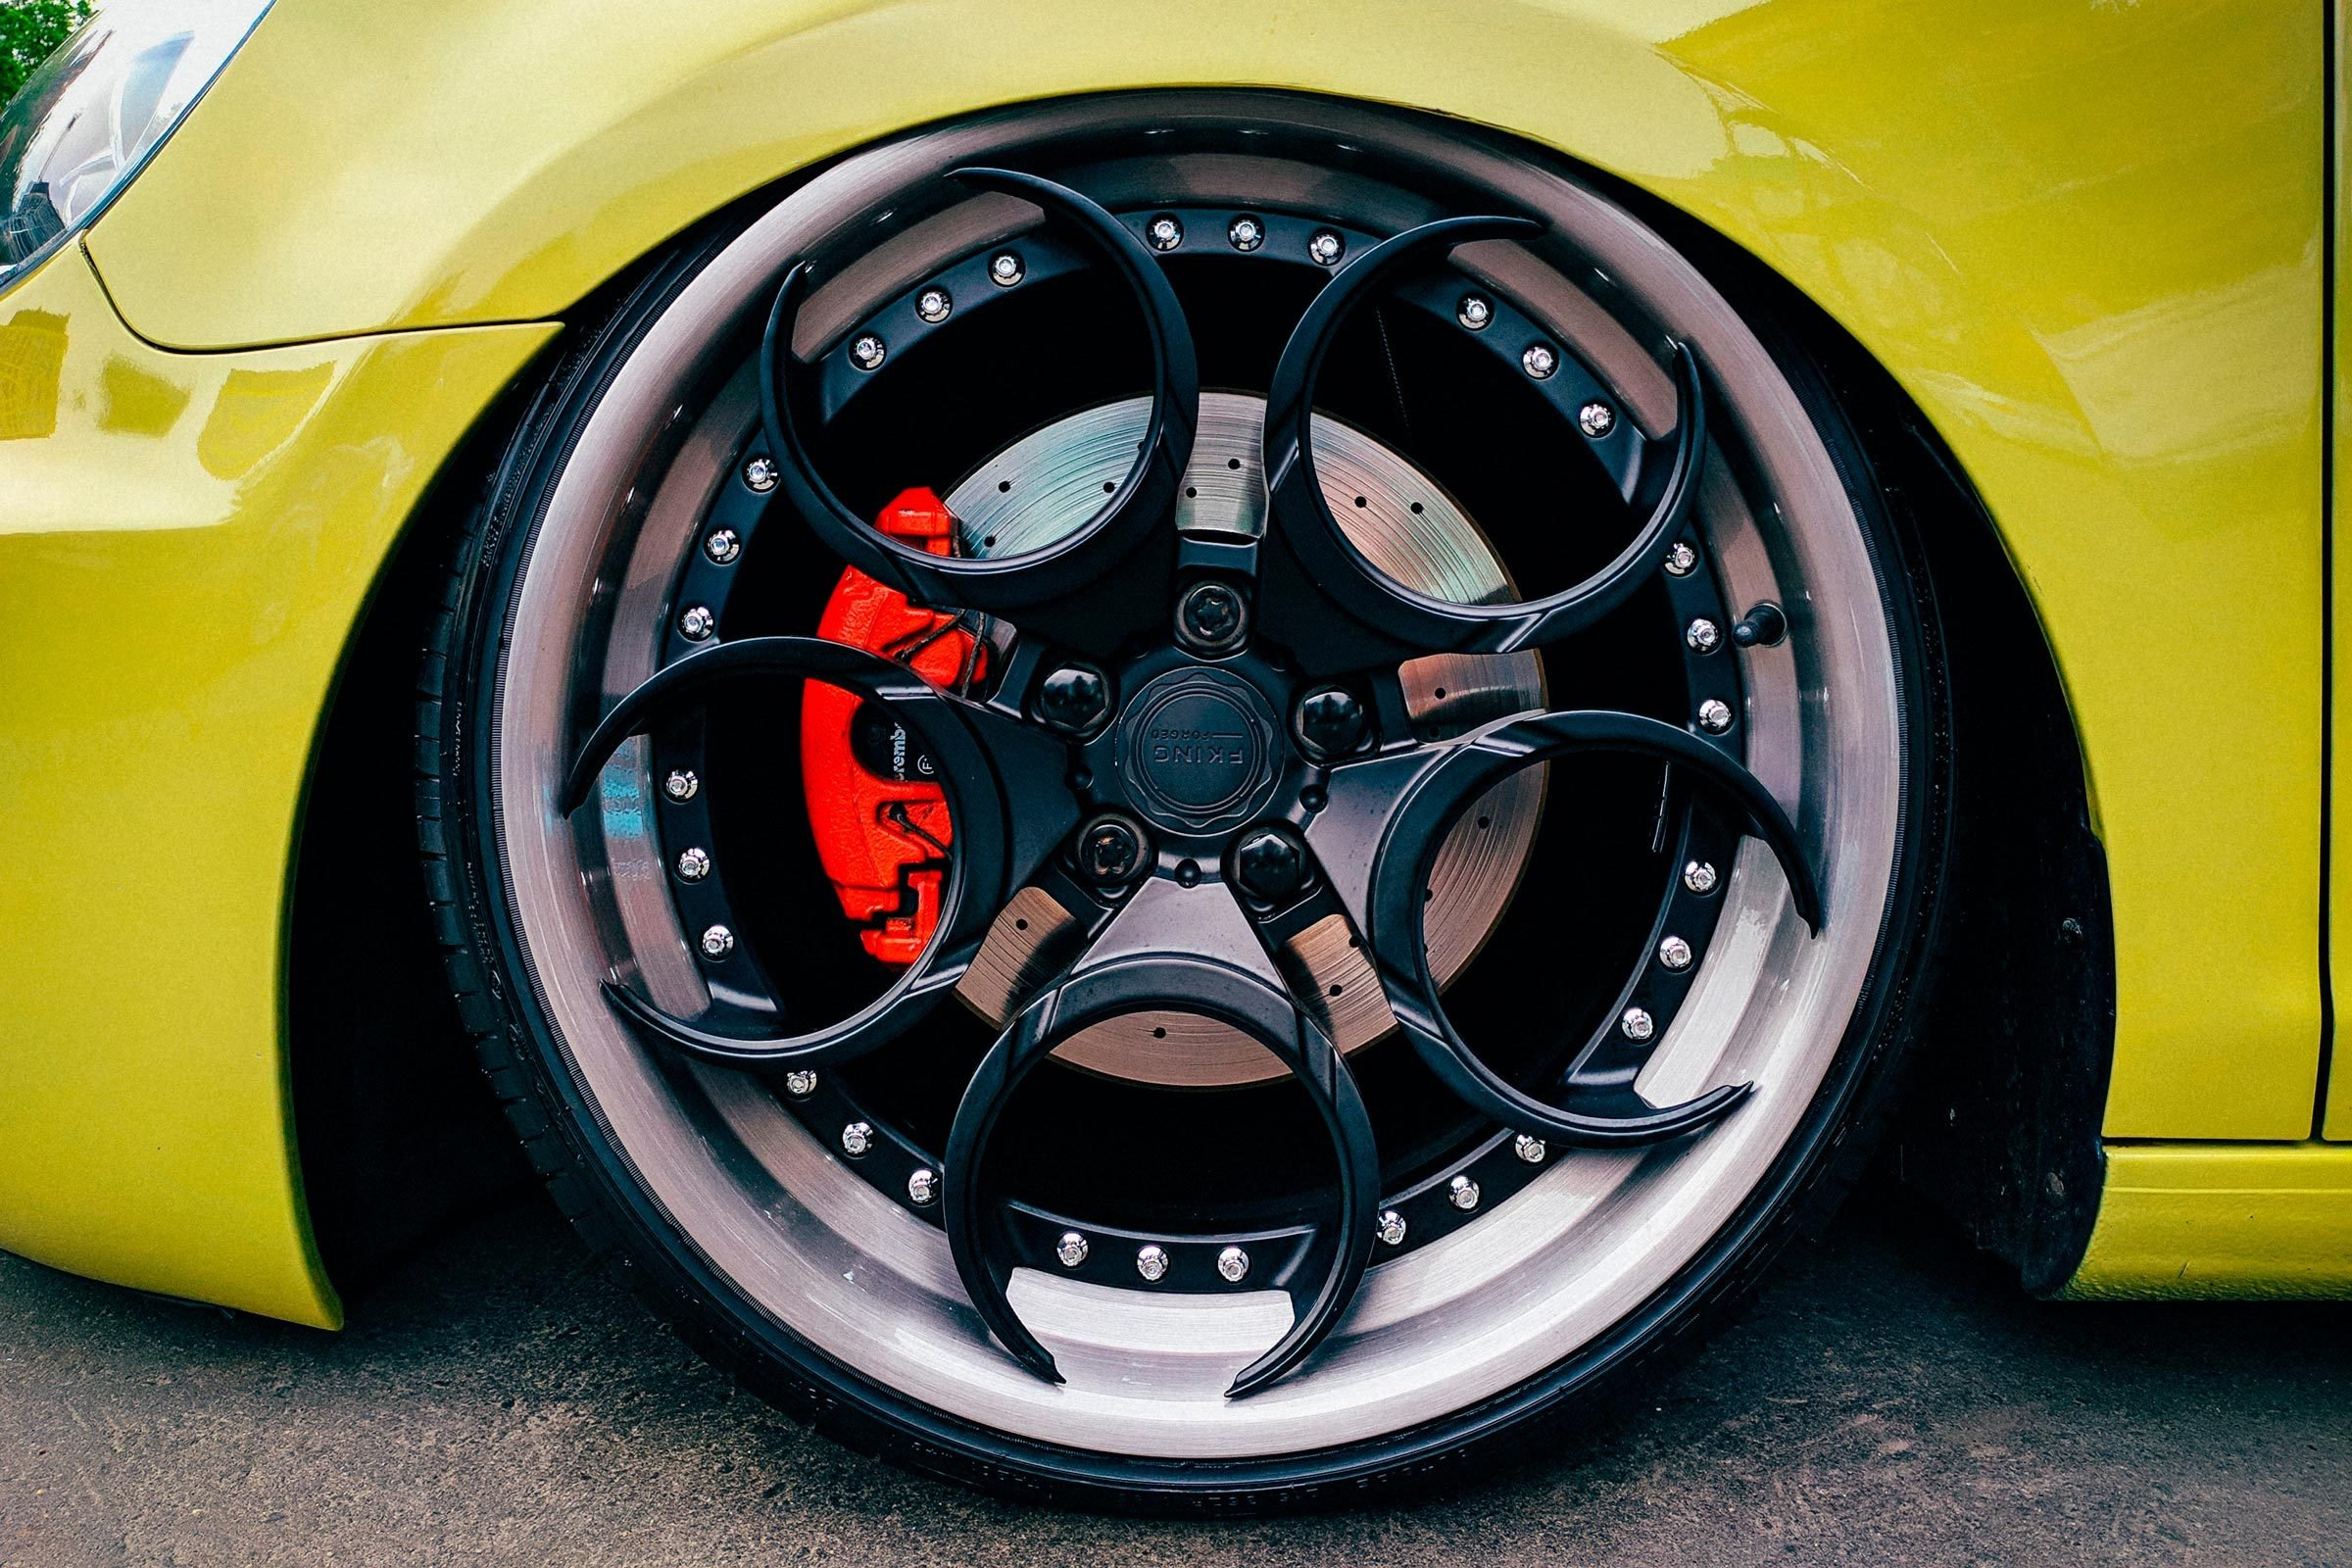 close up of custom wheels and brakes on a green car